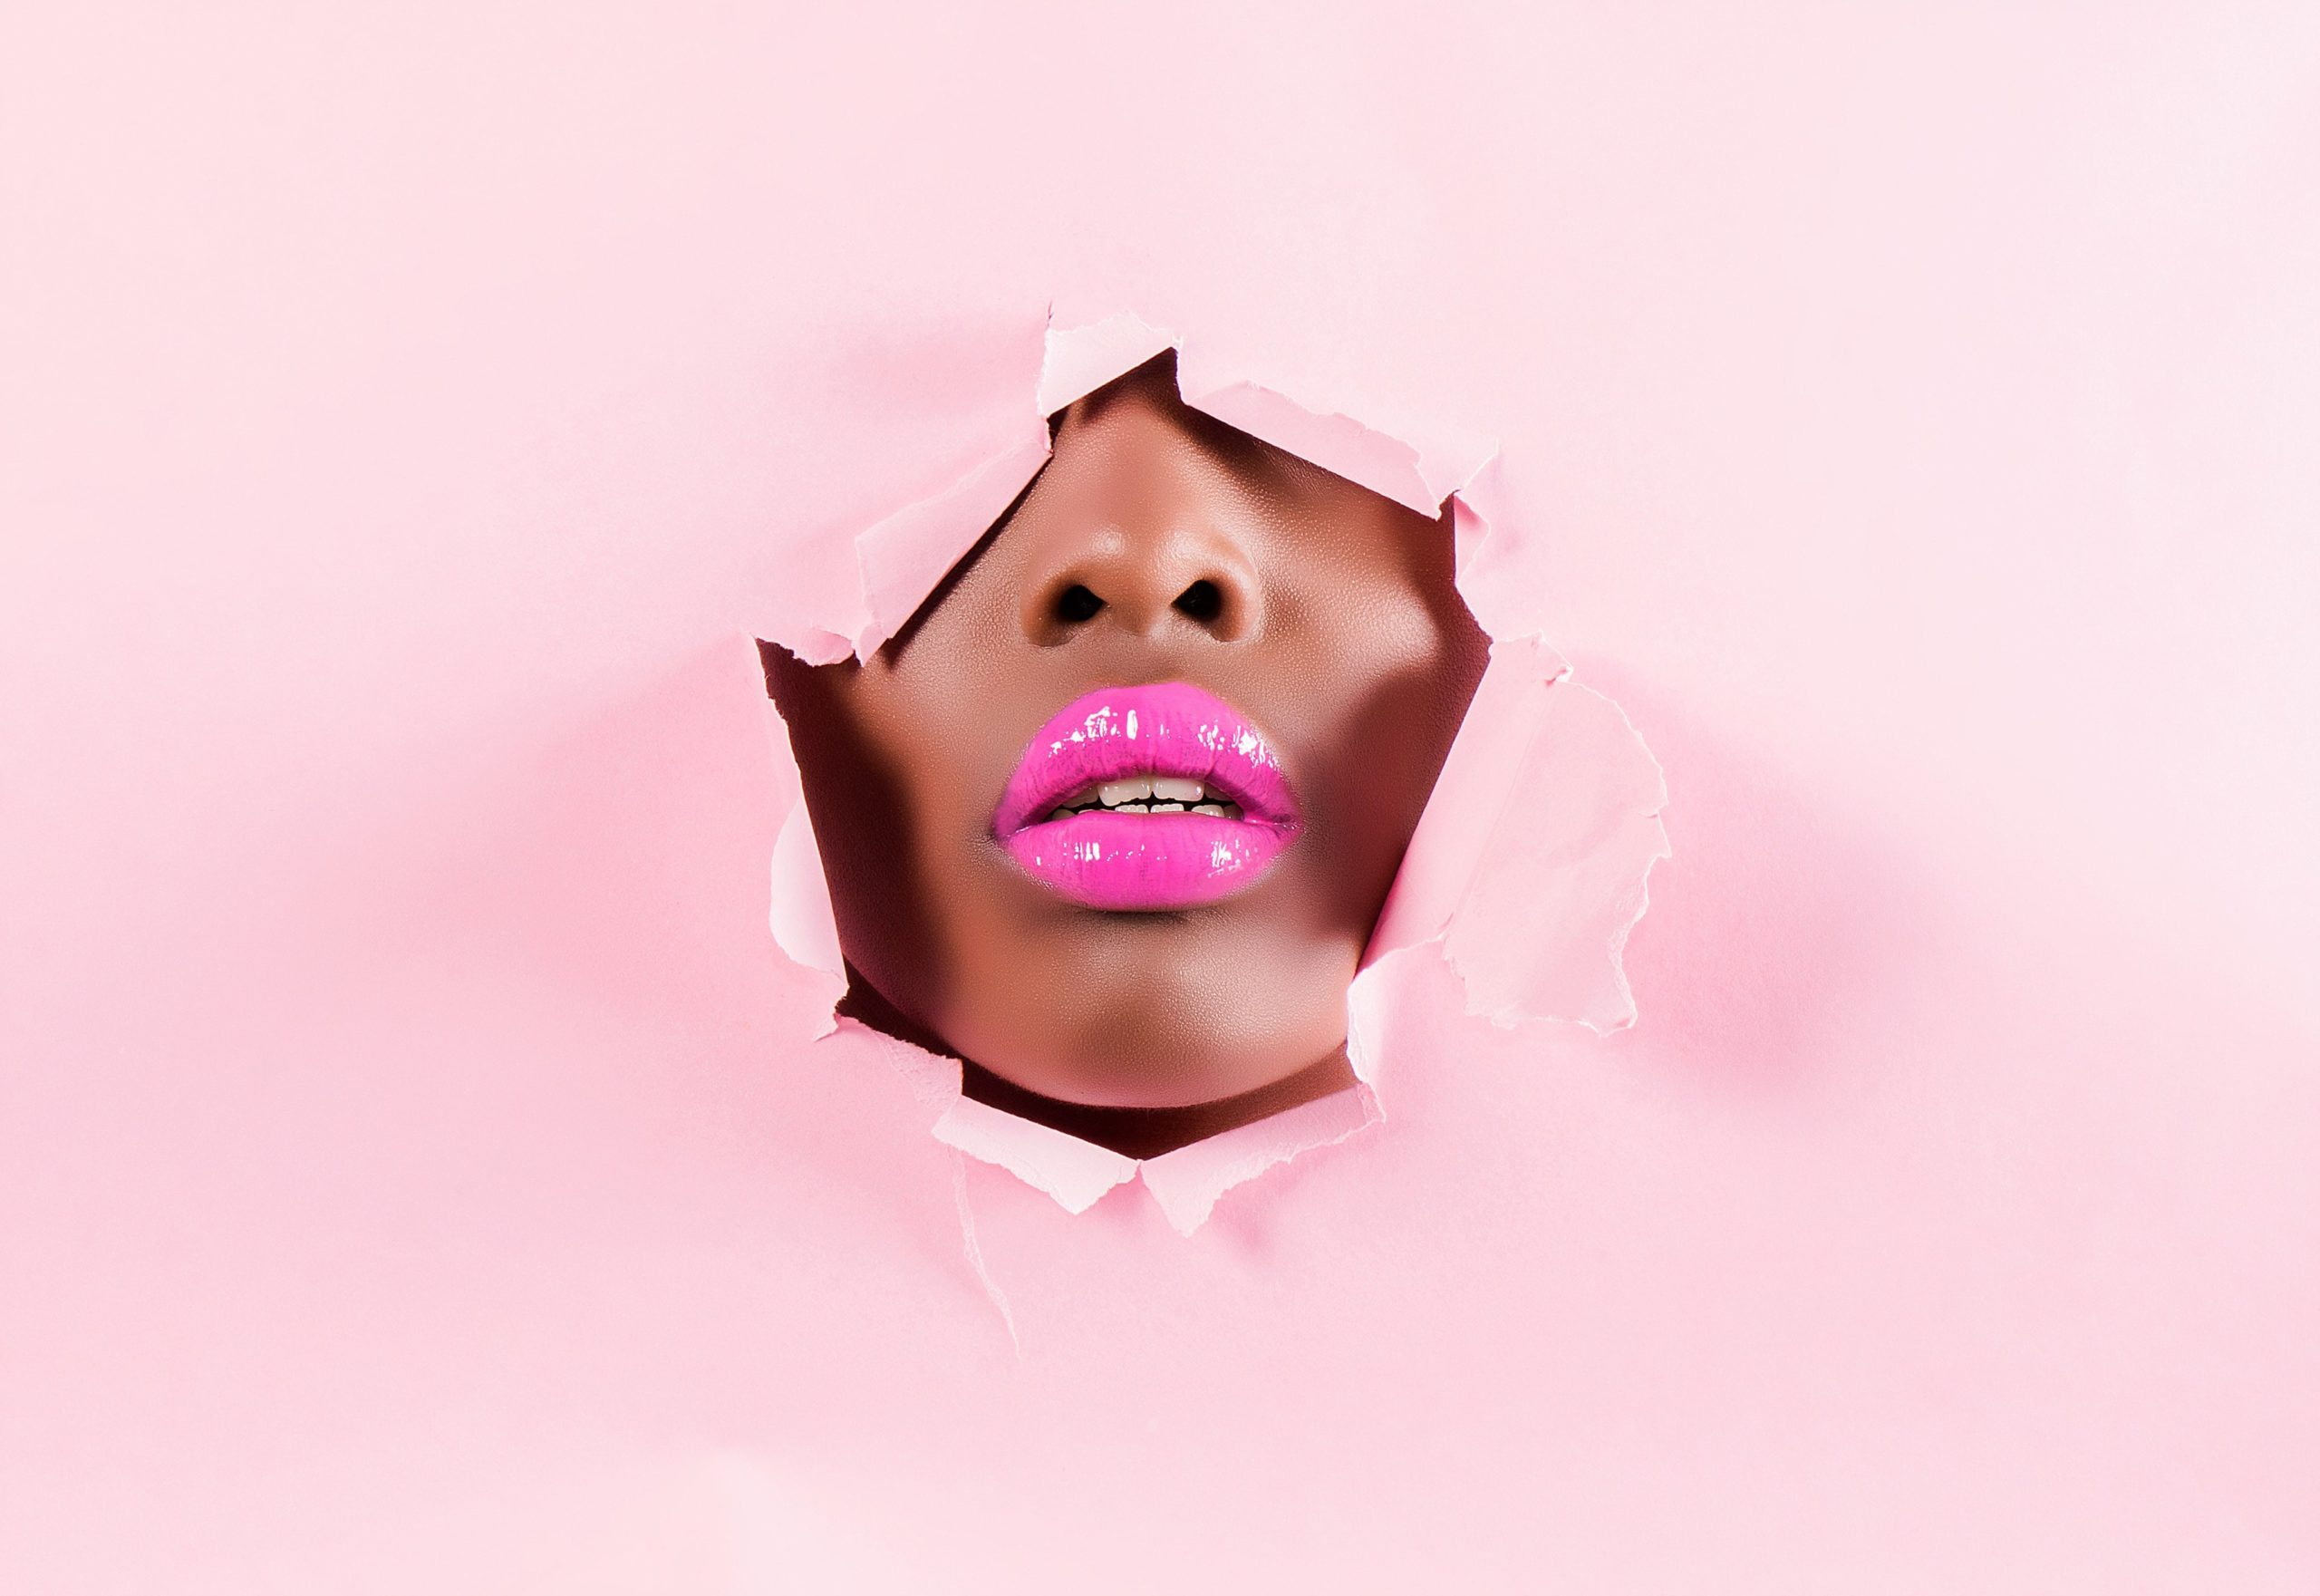 full image is pink, but a hole cut in the middle, separating the paper, of which a woman is posing with pink lips close up.